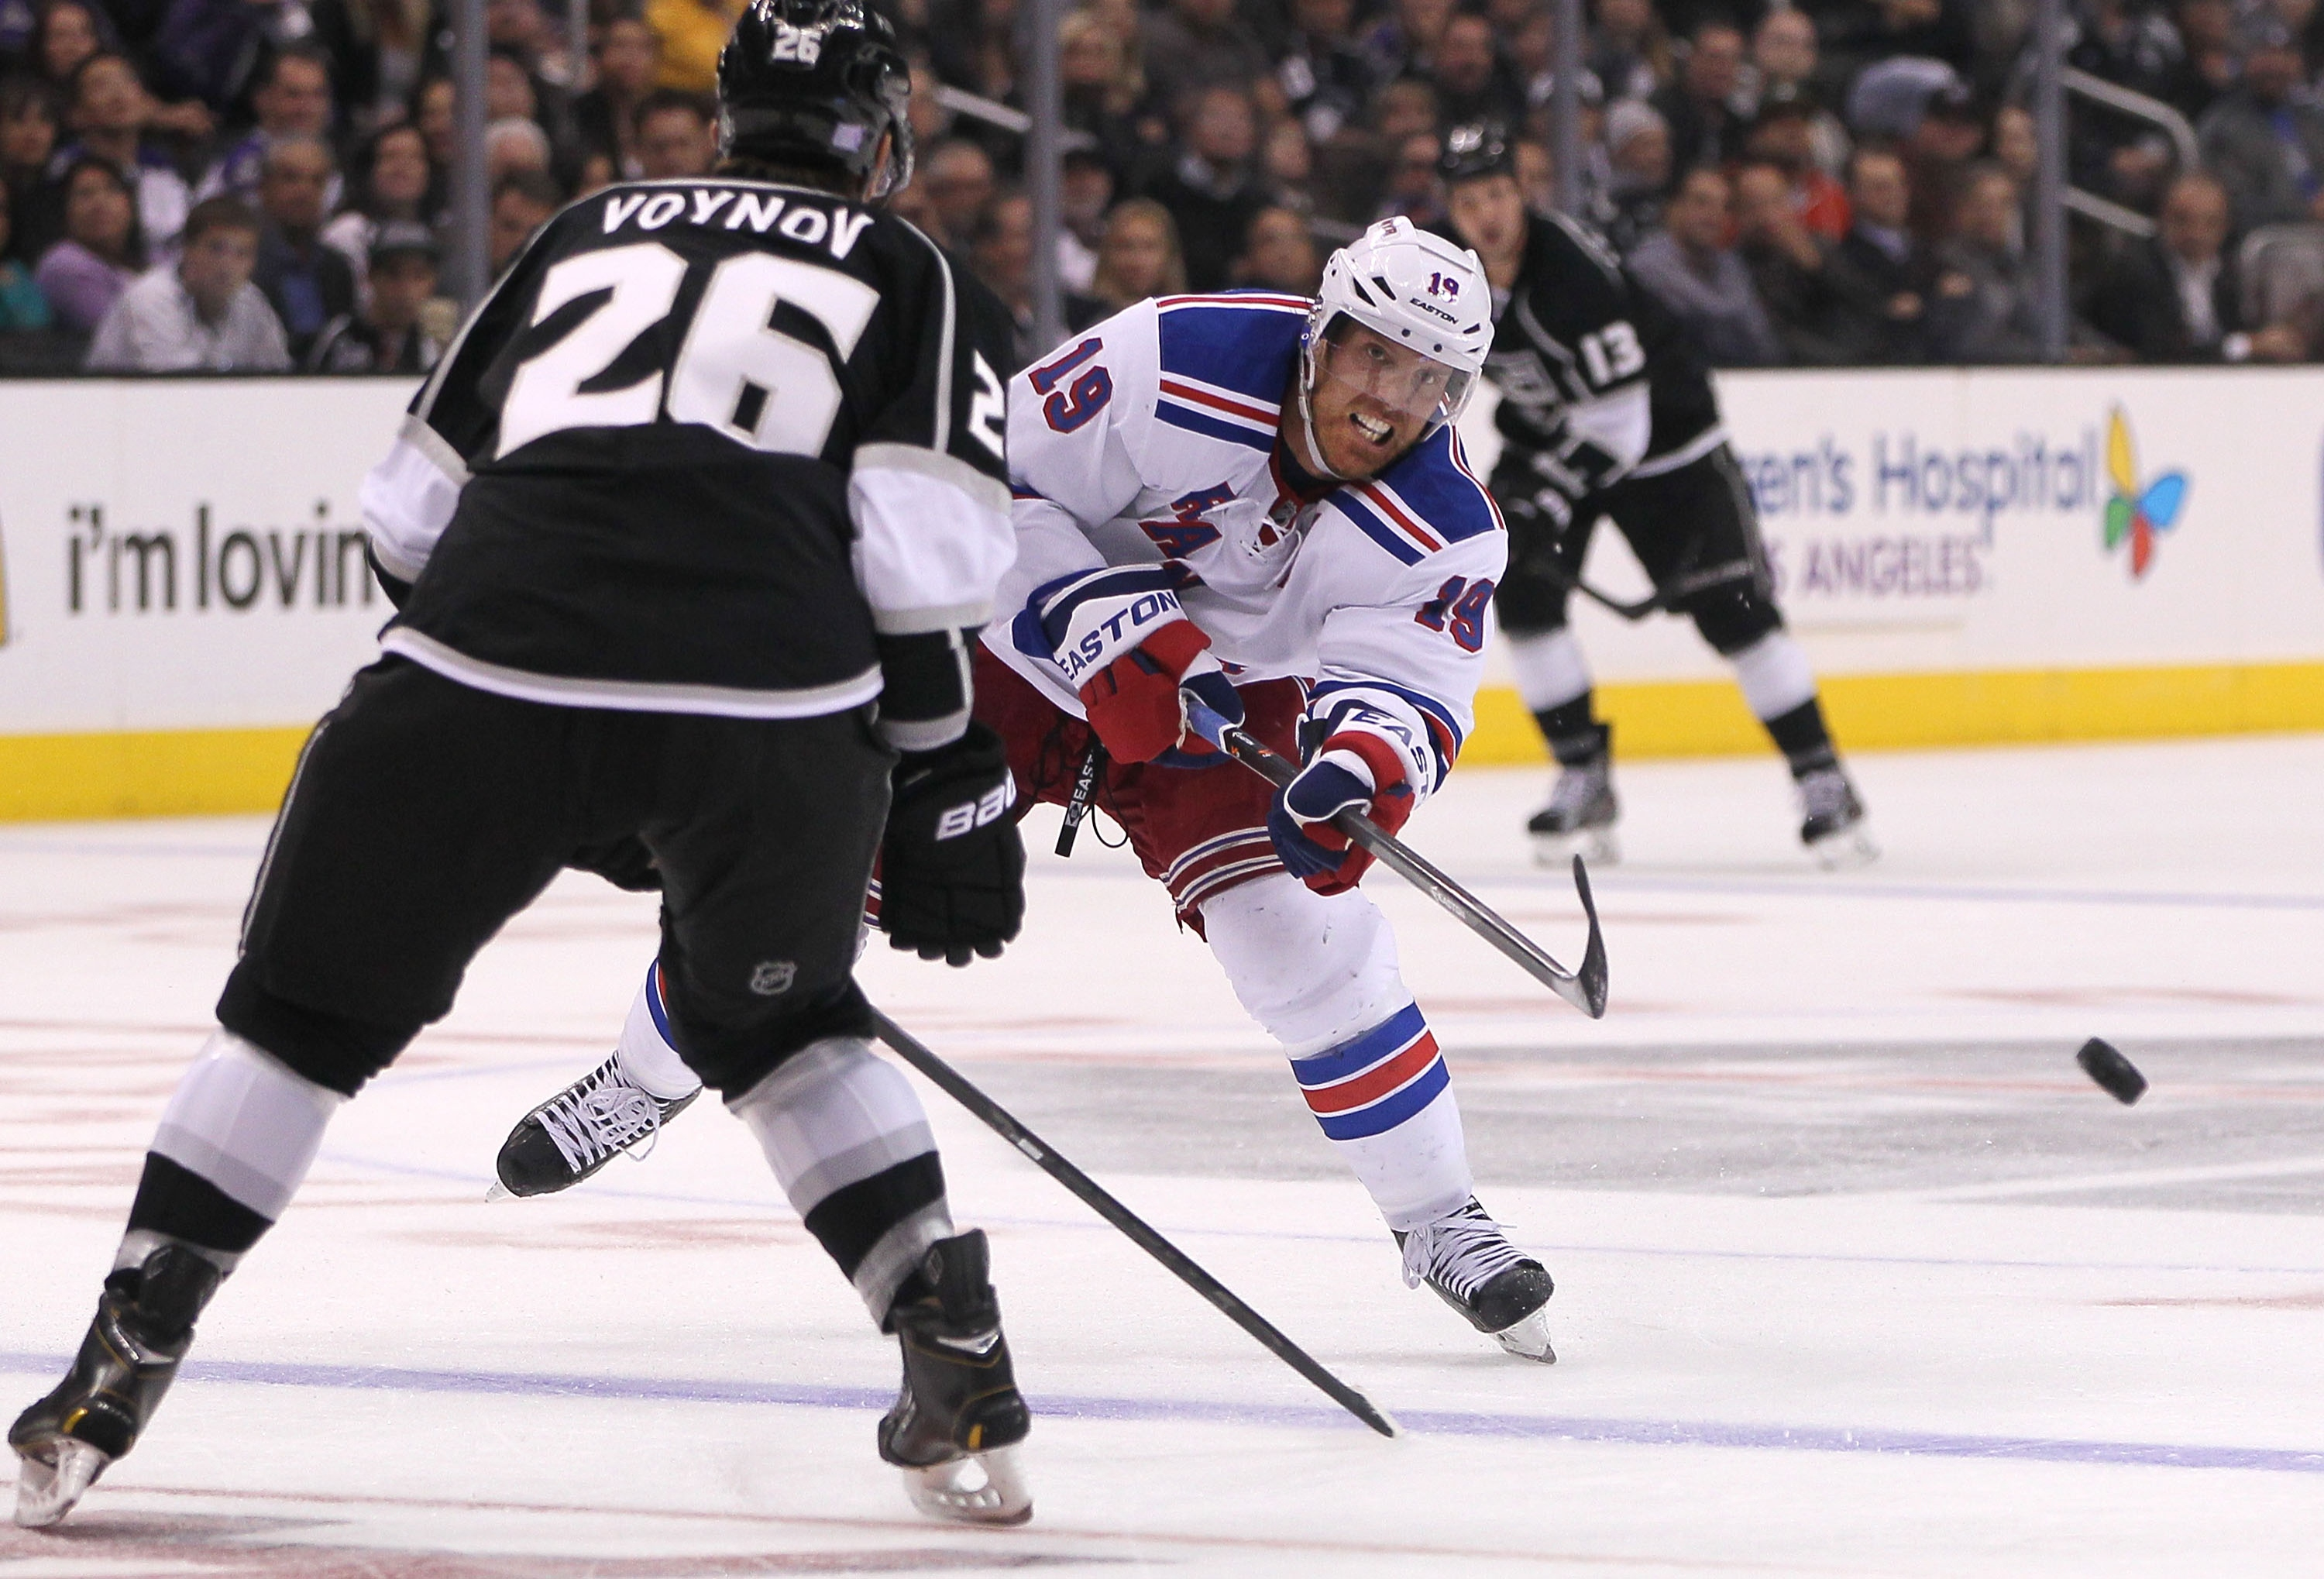 The Rangers have struggled, but Brad Richards is off to a good start after being scratched in 2013 playoffs. (Getty)